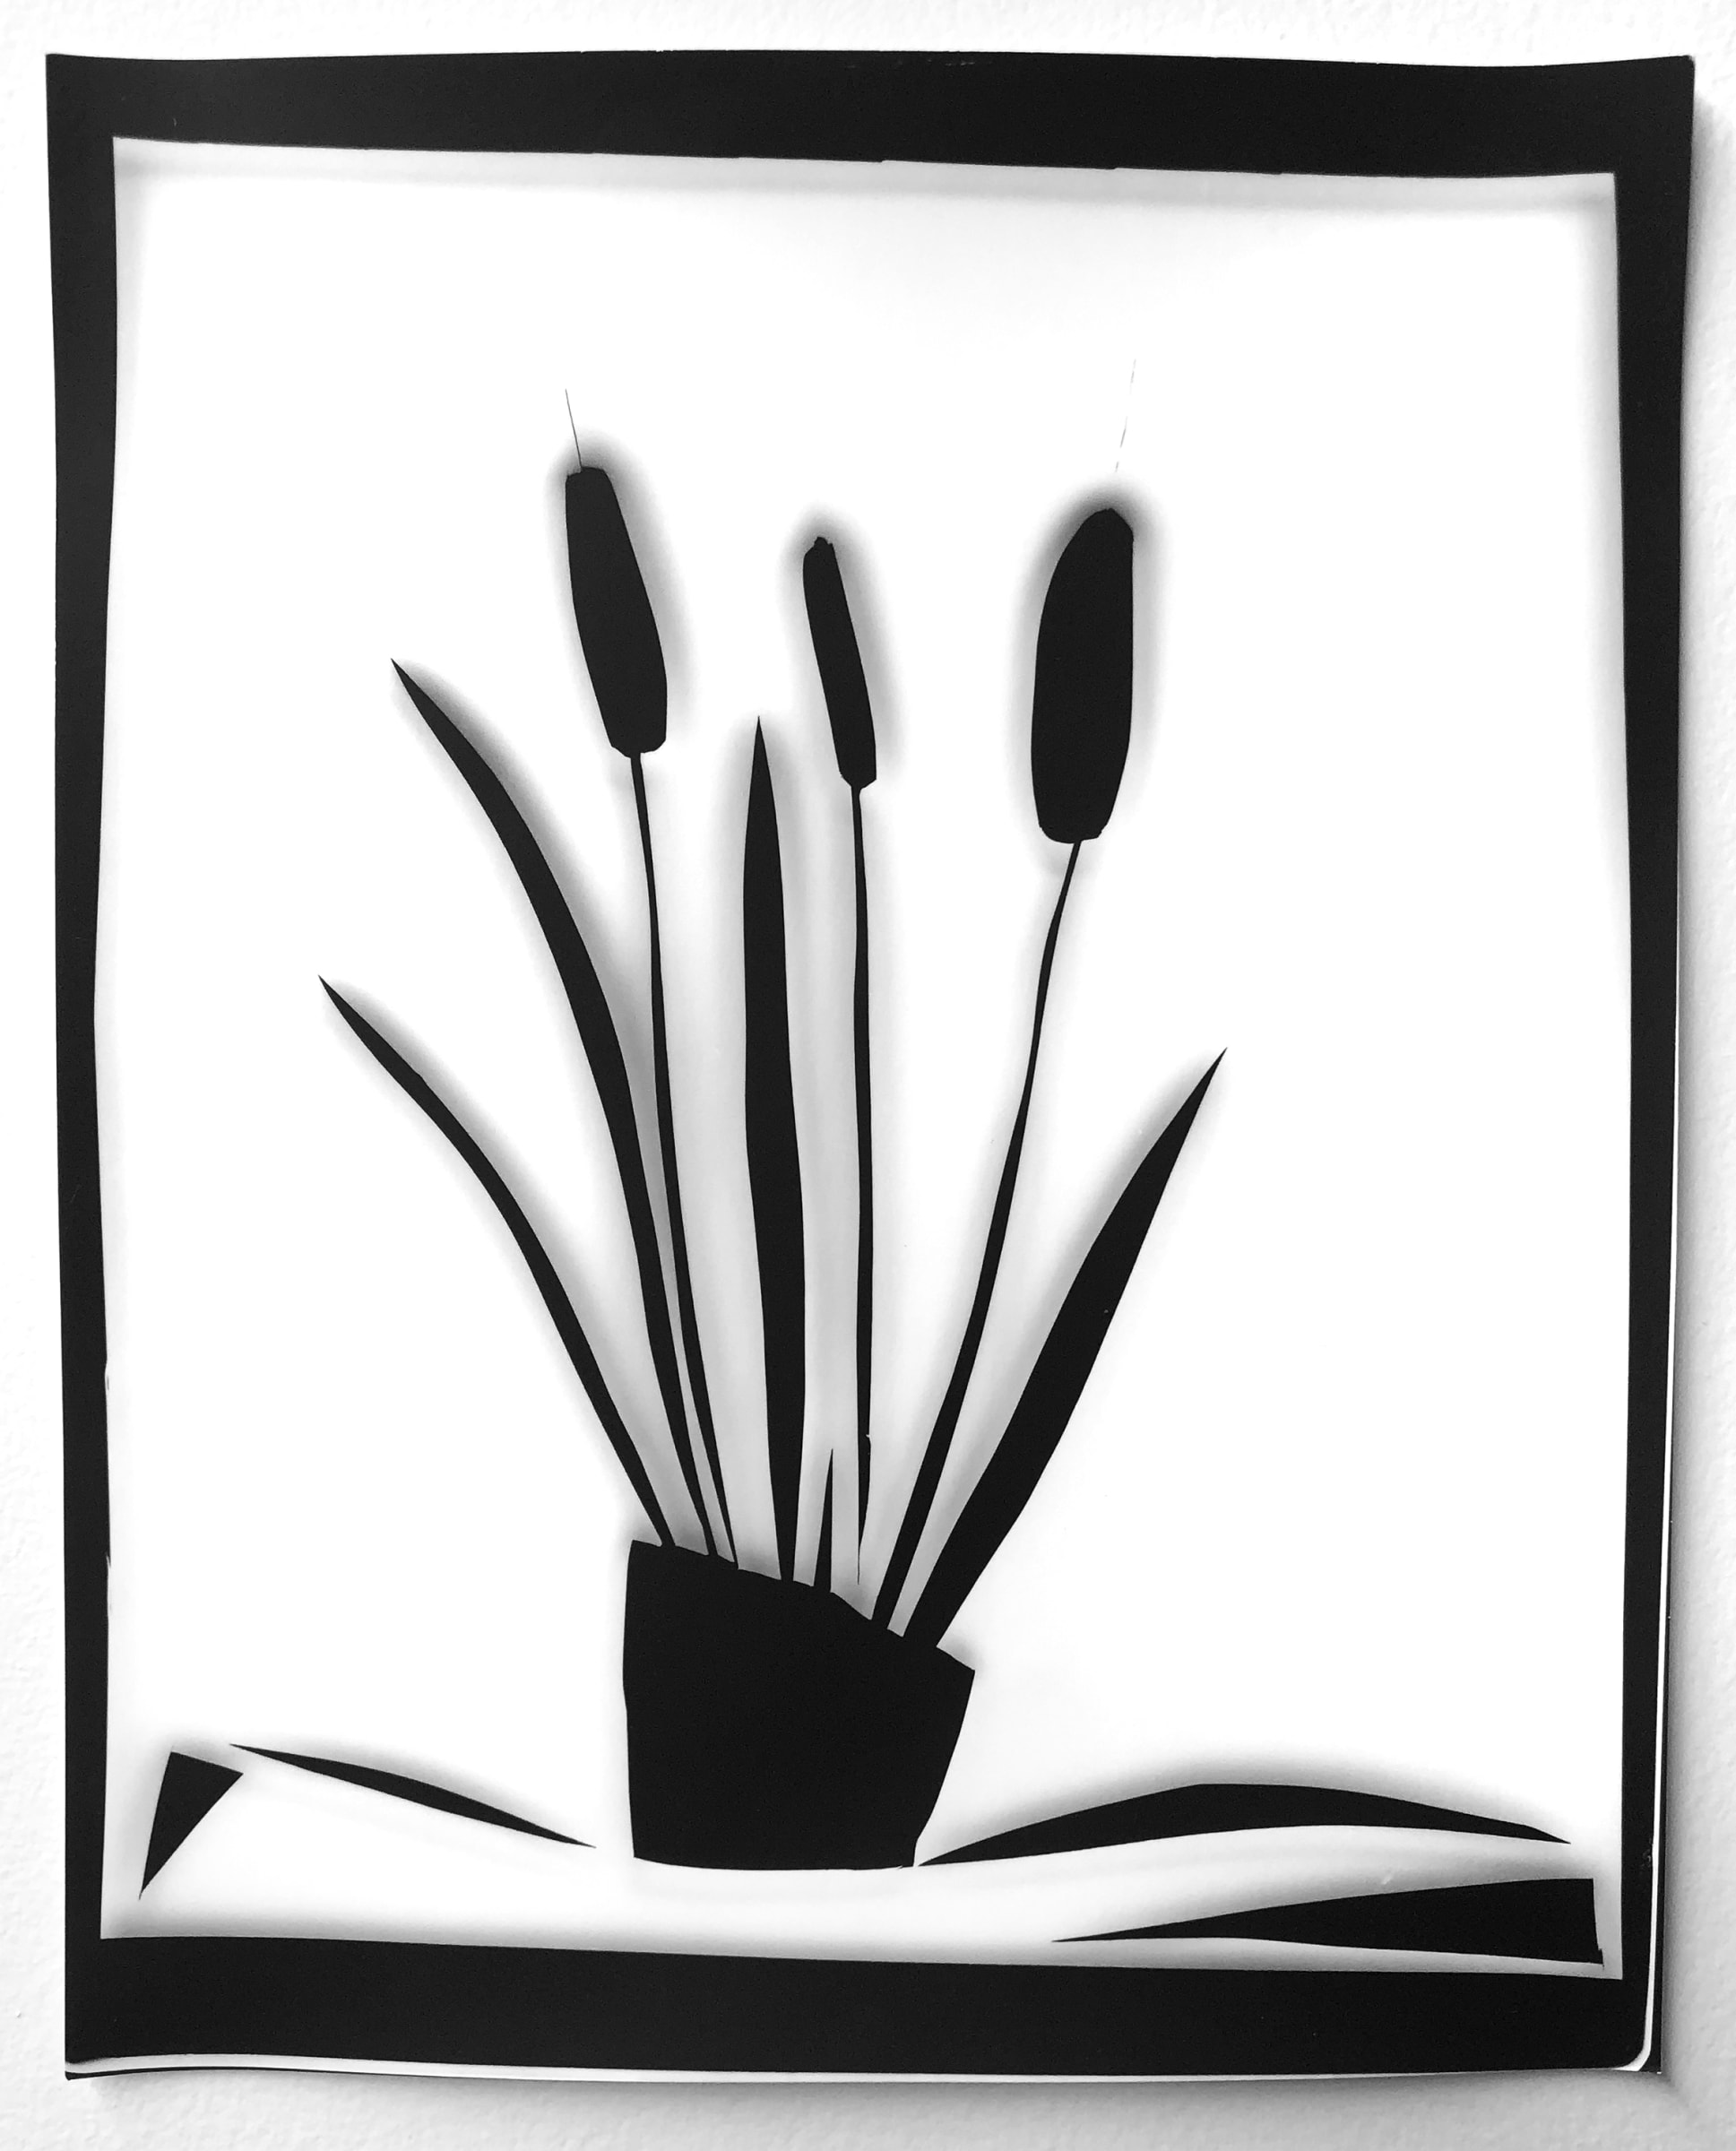 """<span class=""""link fancybox-details-link""""><a href=""""/artists/26-liz-nielsen/works/1044-liz-nielsen-cattail-plant-2020/"""">View Detail Page</a></span><div class=""""artist""""><strong>Liz Nielsen</strong></div> <div class=""""title""""><em>Cattail Plant</em>, 2020</div> <div class=""""medium"""">Analogue silver gelatin photogram on Ilford Matte<br /> Framed in a handmade white box frame with museum glass<br /> Unique</div> <div class=""""dimensions"""">25.4 x 20.3 cm<br /> 10 x 8 in</div><div class=""""copyright_line"""">Copyright Liz Nielsen</div>"""